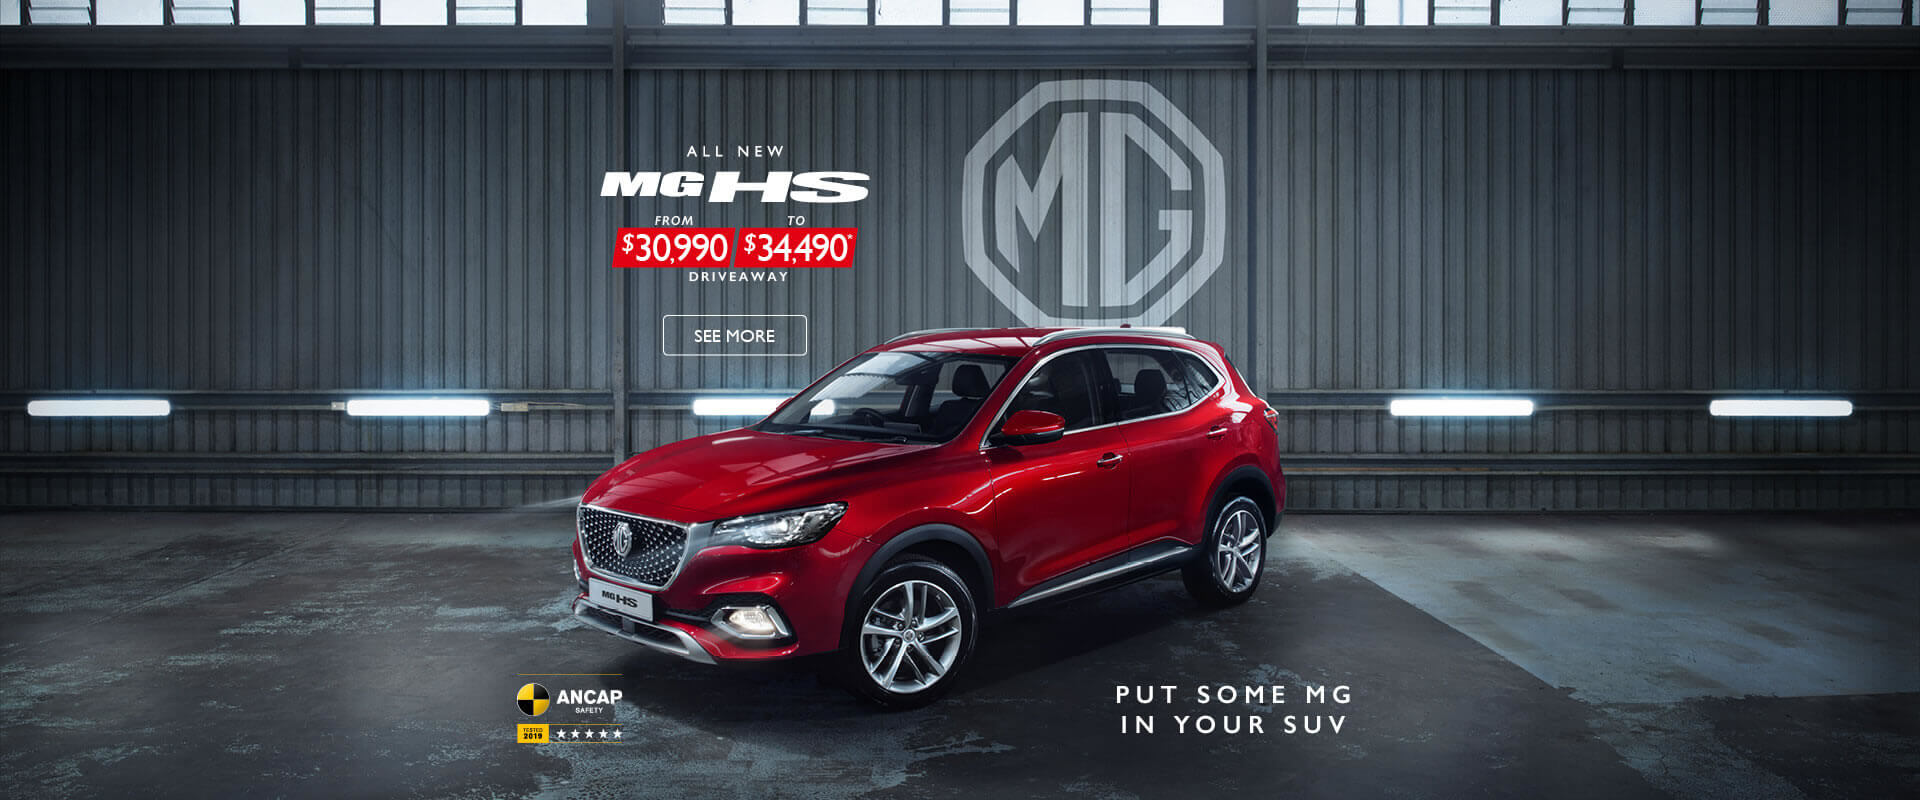 MG - The All New MG HS